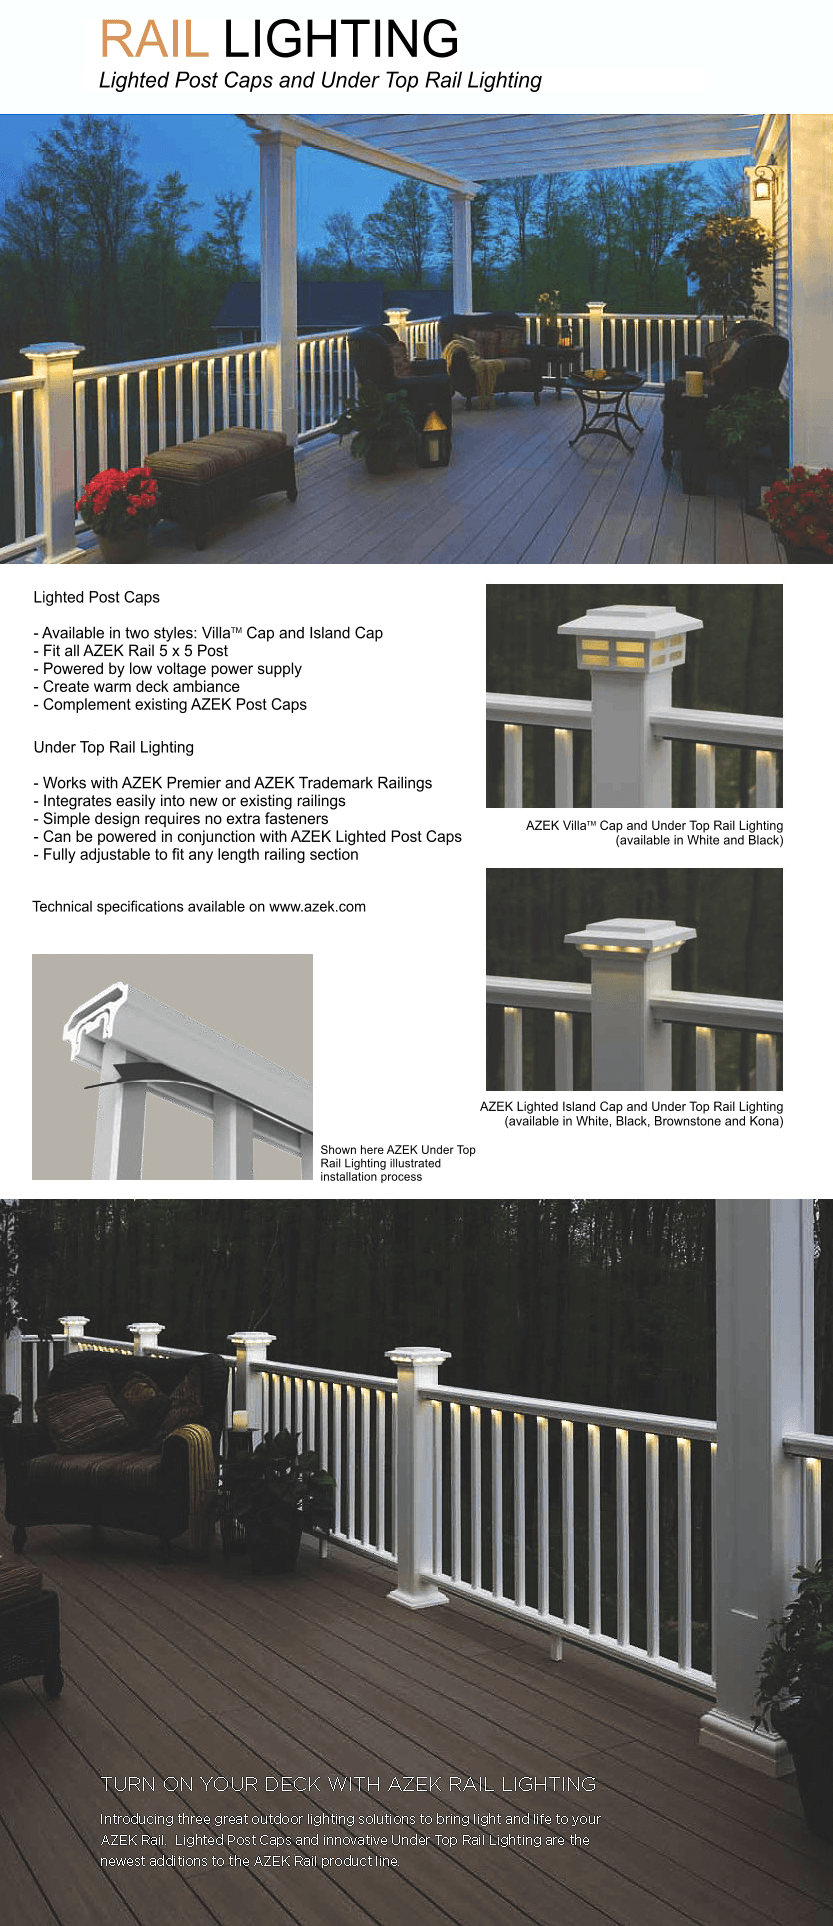 AZEK Railing Rail Lighting image